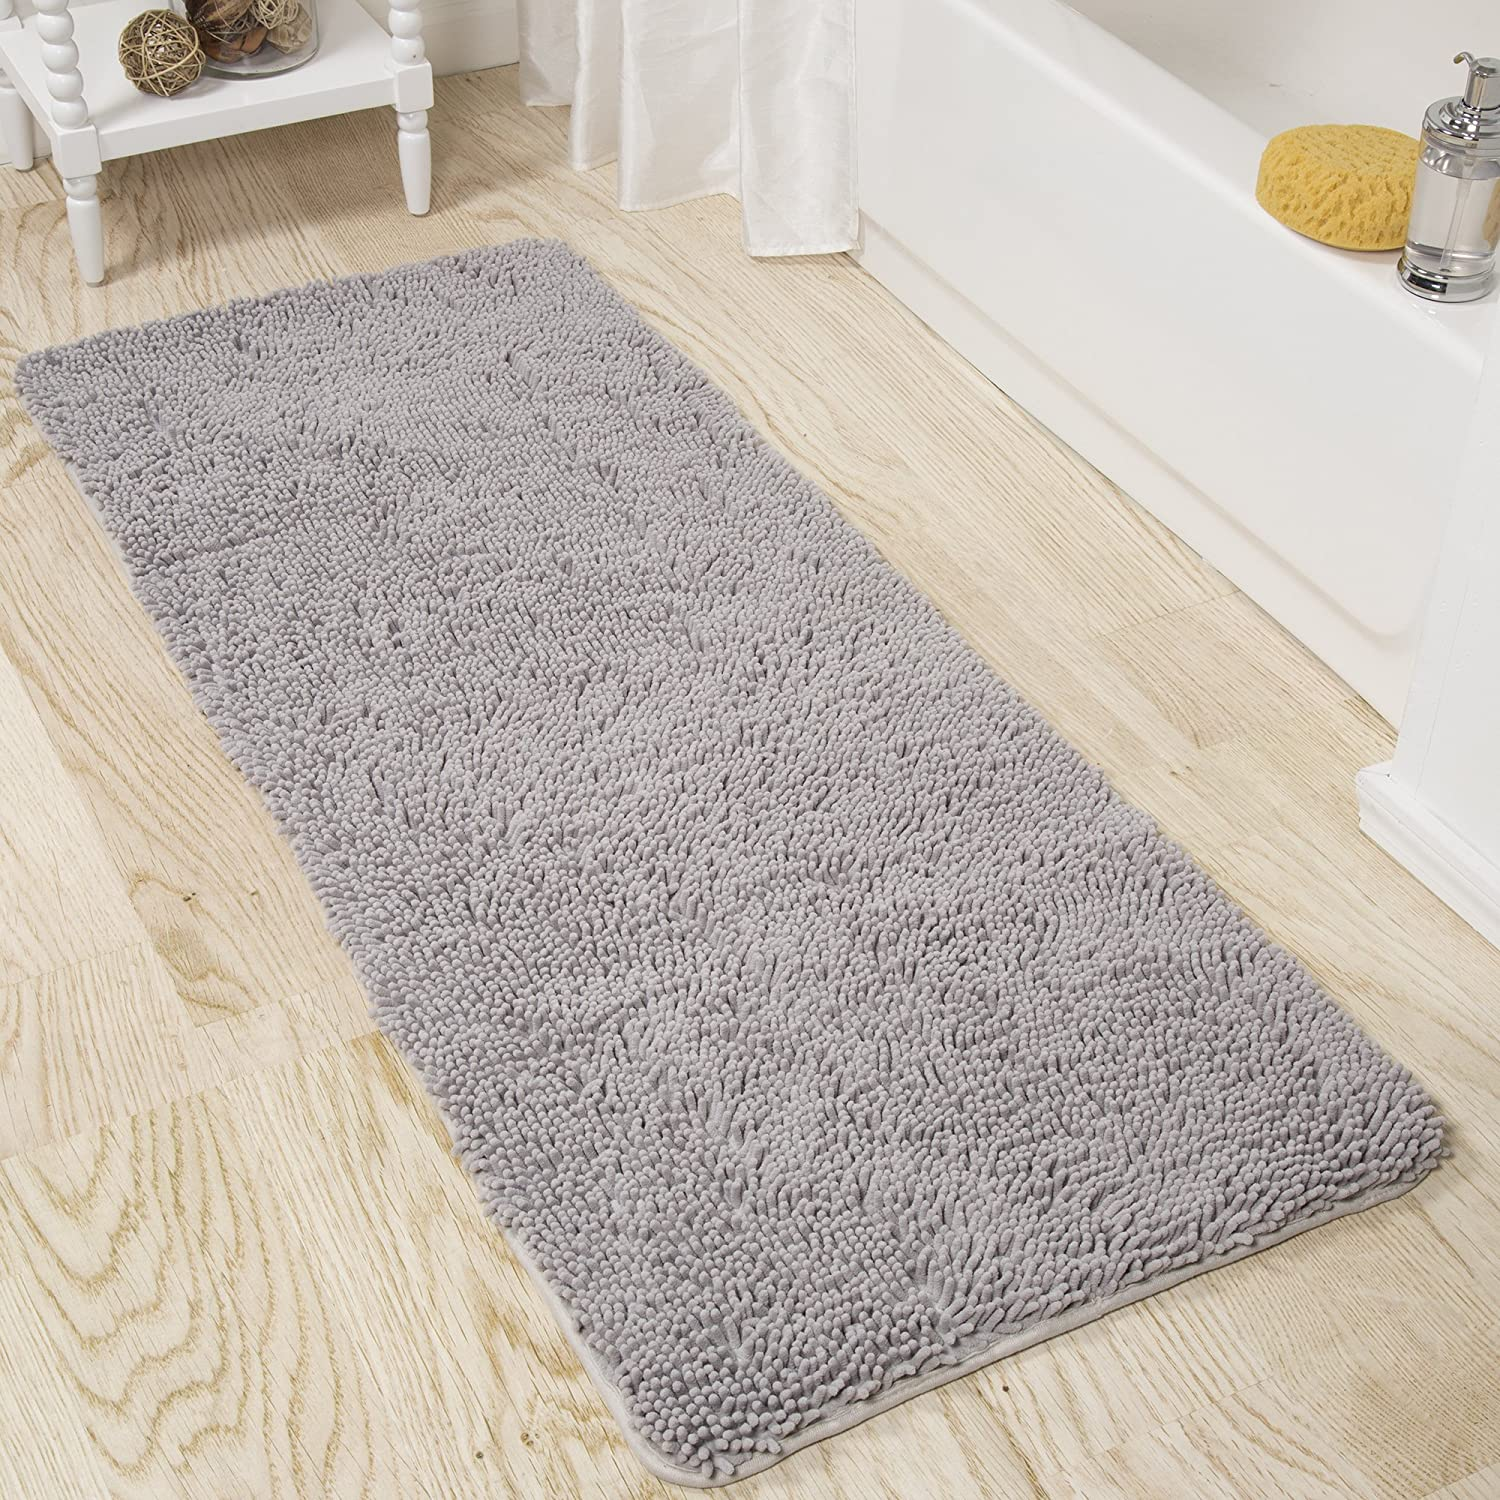 Bedford Home Memory Foam Shag Bath Mat 2-Feet by 5-Feet- Grey